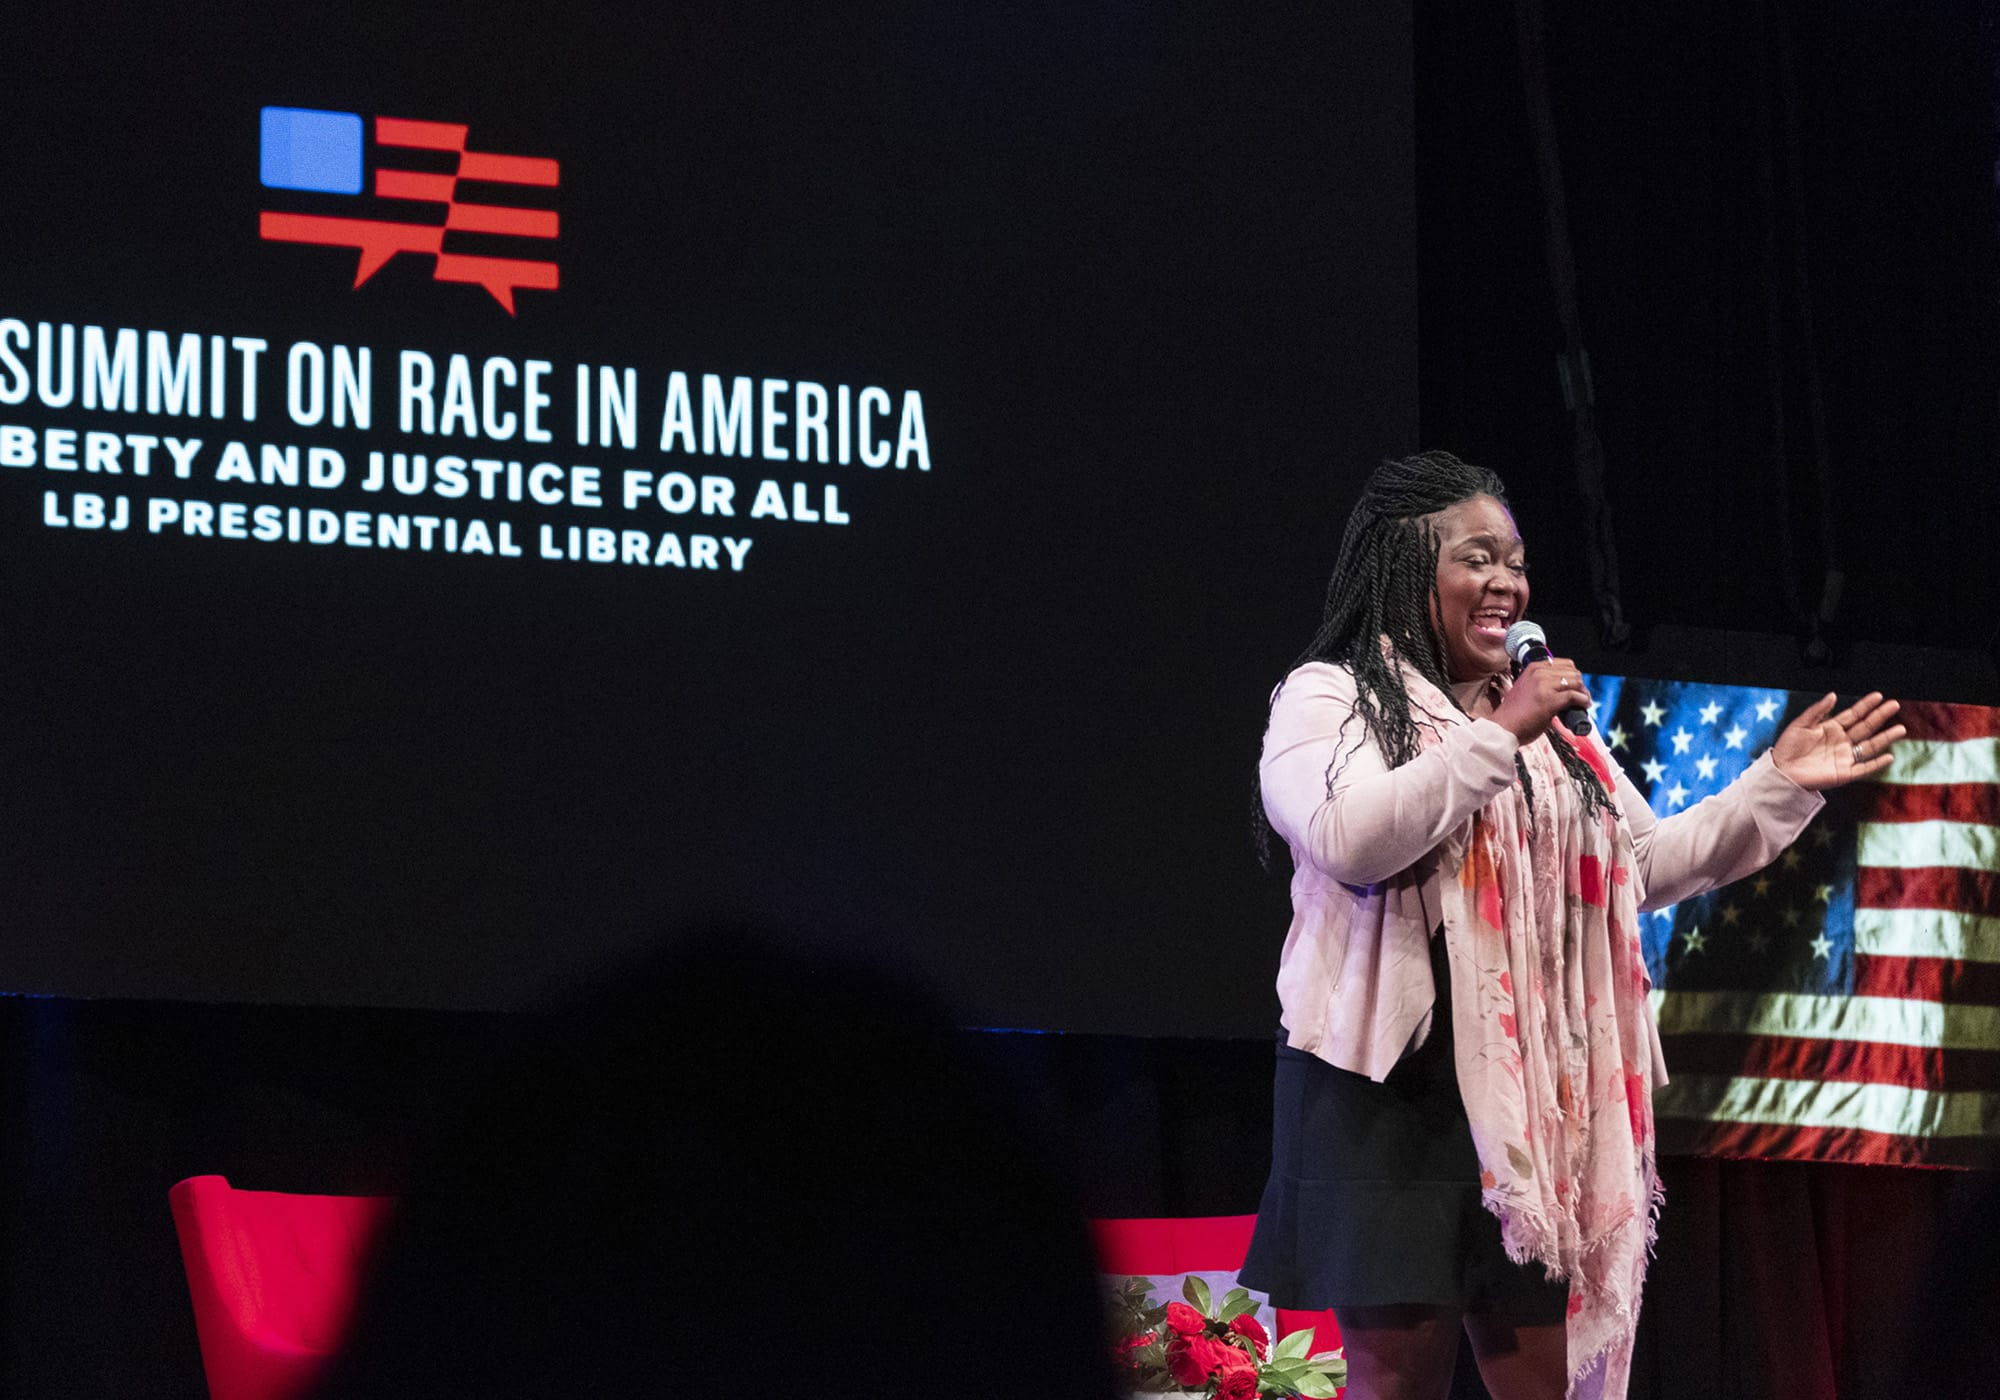 Shemekia Copeland performing at The Summit on Race in America.